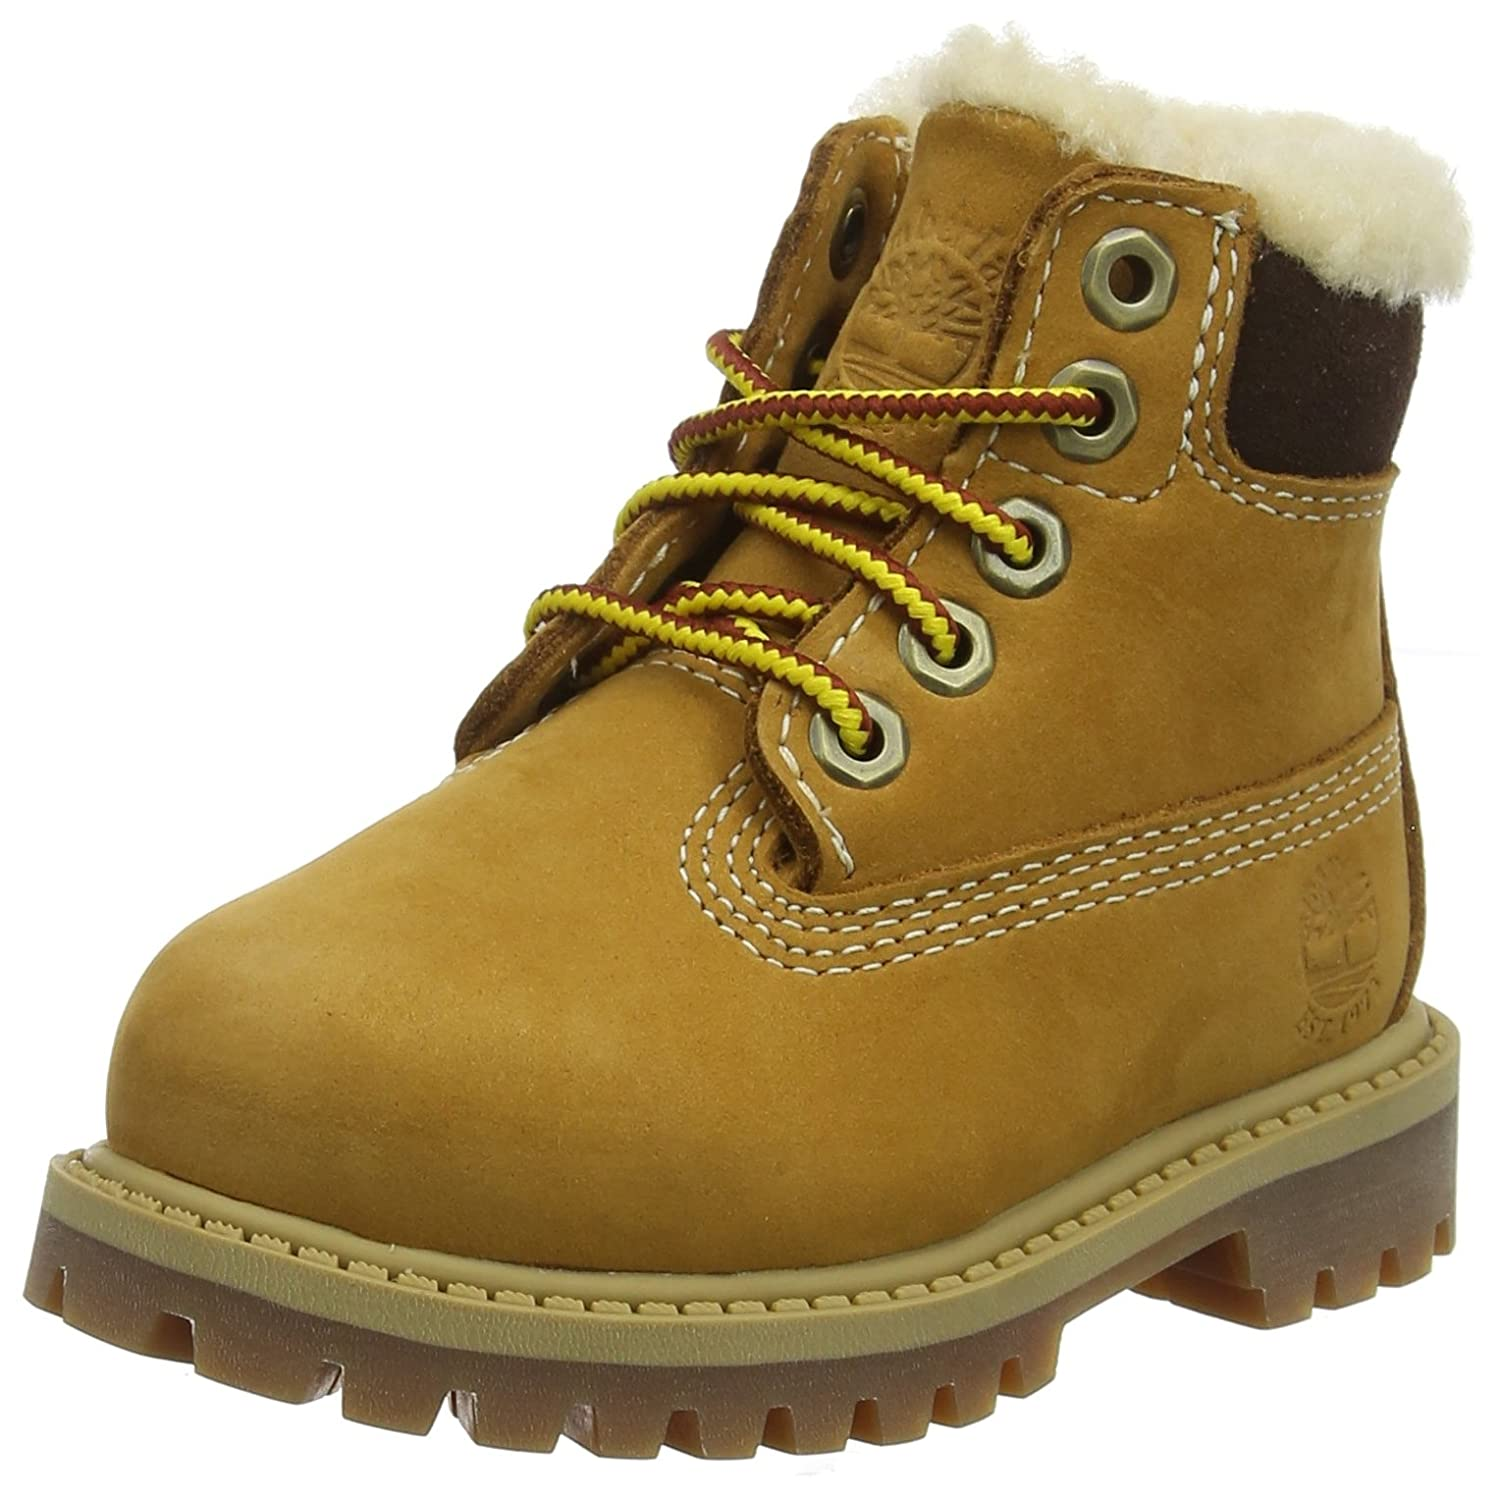 Timberland 6 in Bottes Premium Waterproof Shearling Lined, Bottes in Mixte Enfant 20 EU|Jaune (Wheat Nubuck) 9896ad